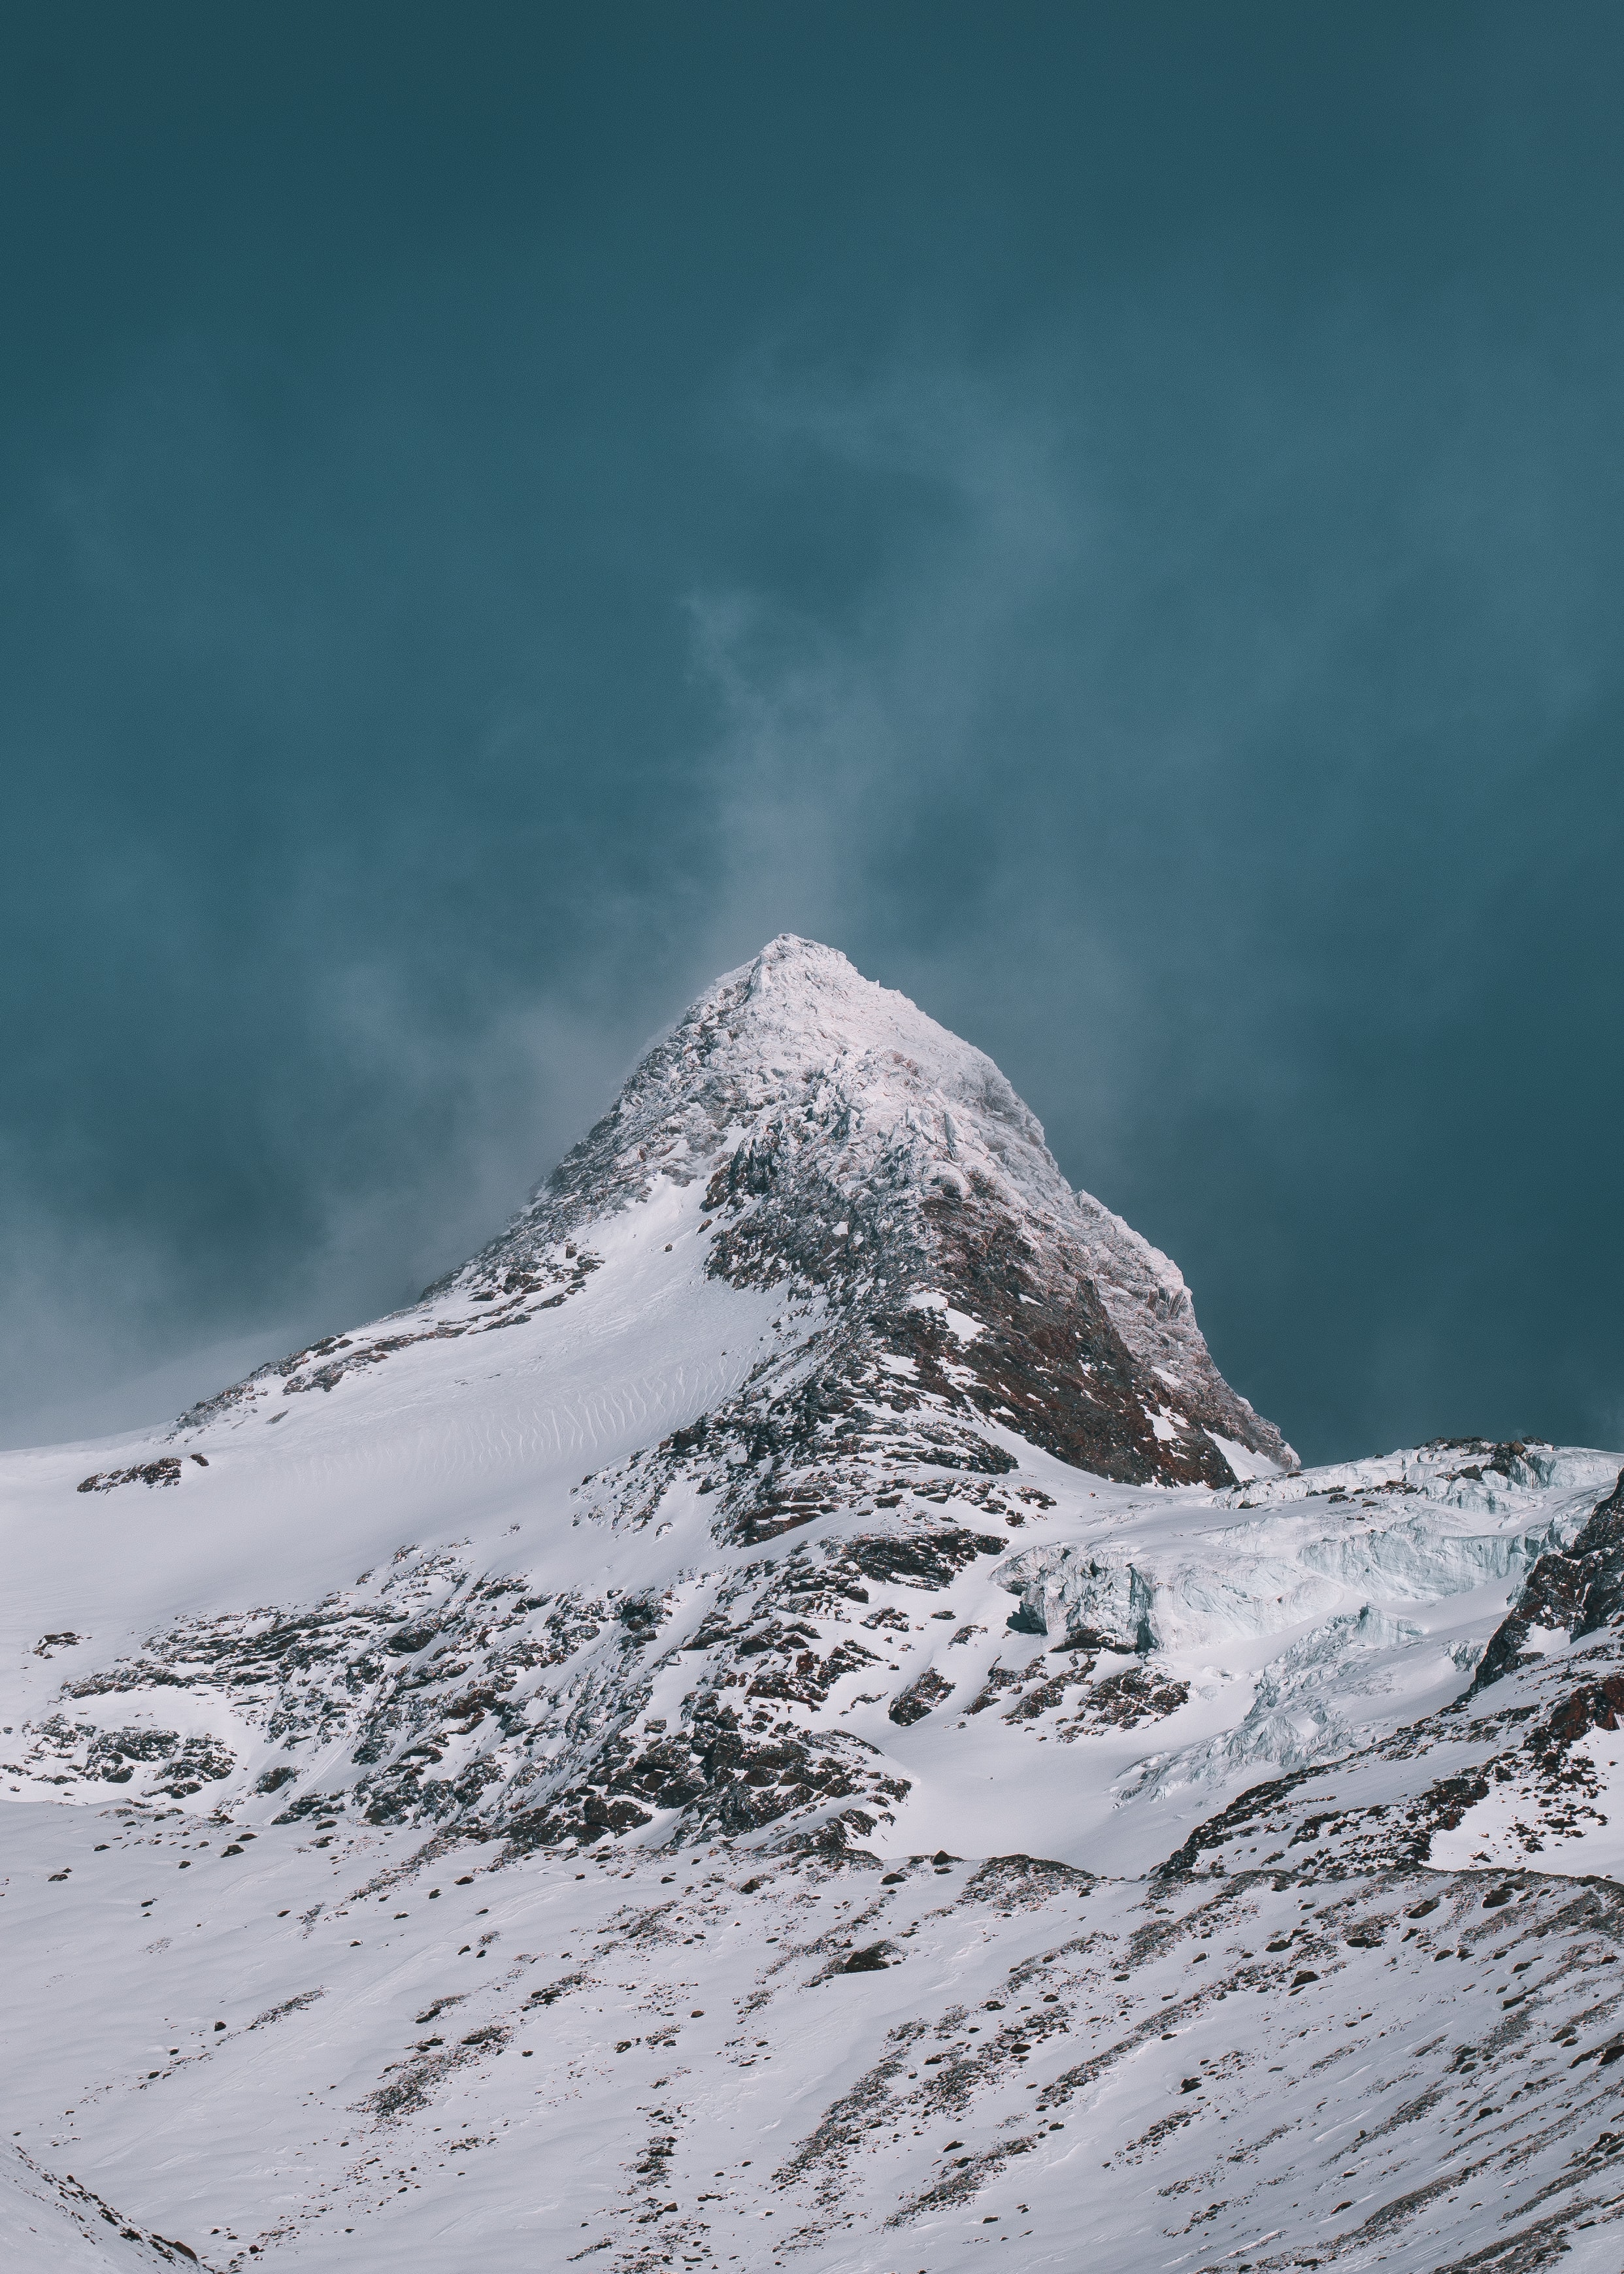 139266 download wallpaper Nature, Vertex, Top, Snow, Snow Covered, Snowbound, Slope, Sky, Mountains screensavers and pictures for free